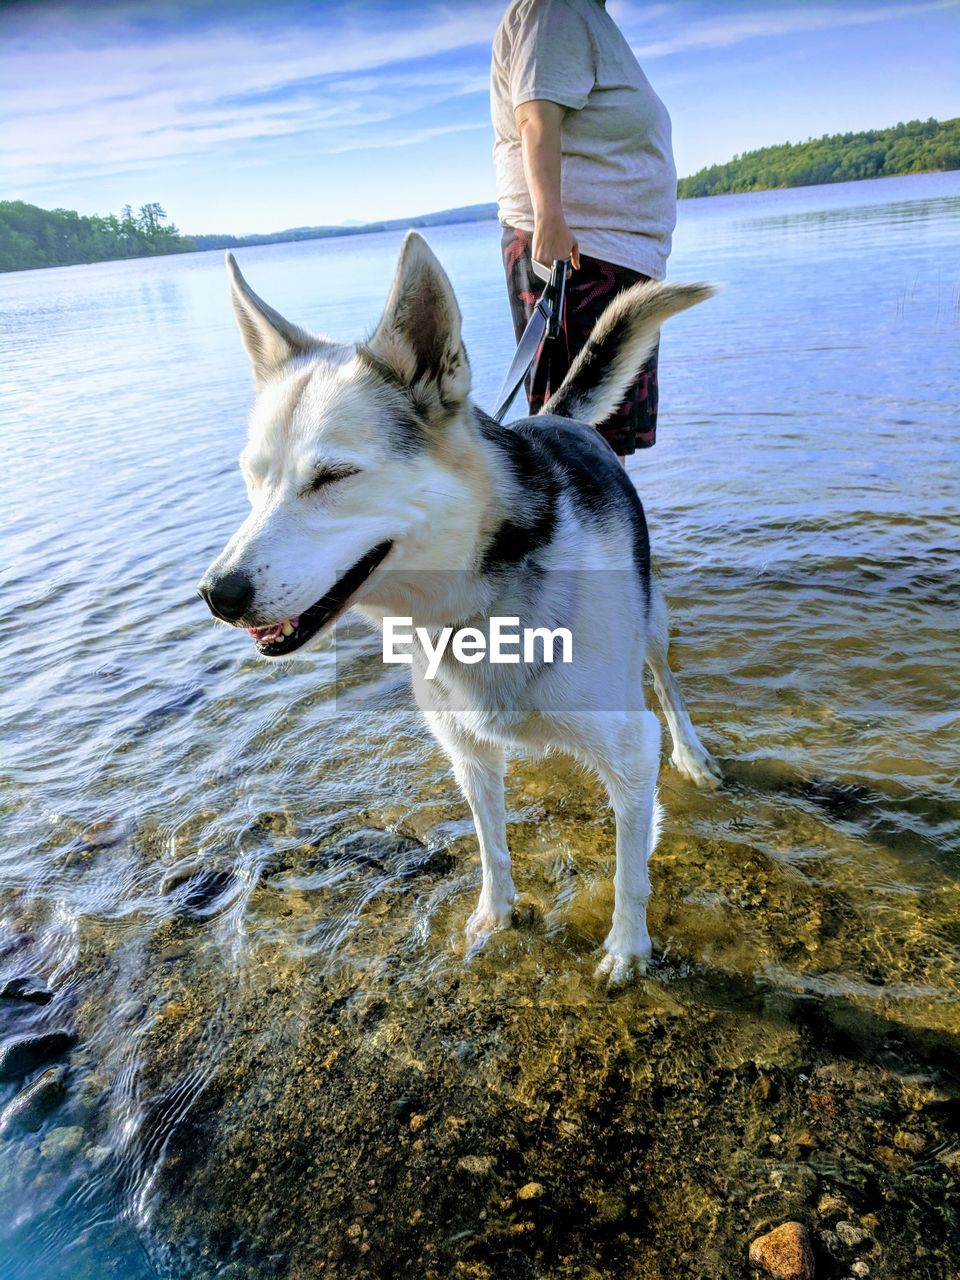 one animal, pets, domestic, domestic animals, mammal, animal, dog, canine, animal themes, water, vertebrate, one person, day, real people, lifestyles, nature, sea, leisure activity, beach, pet owner, outdoors